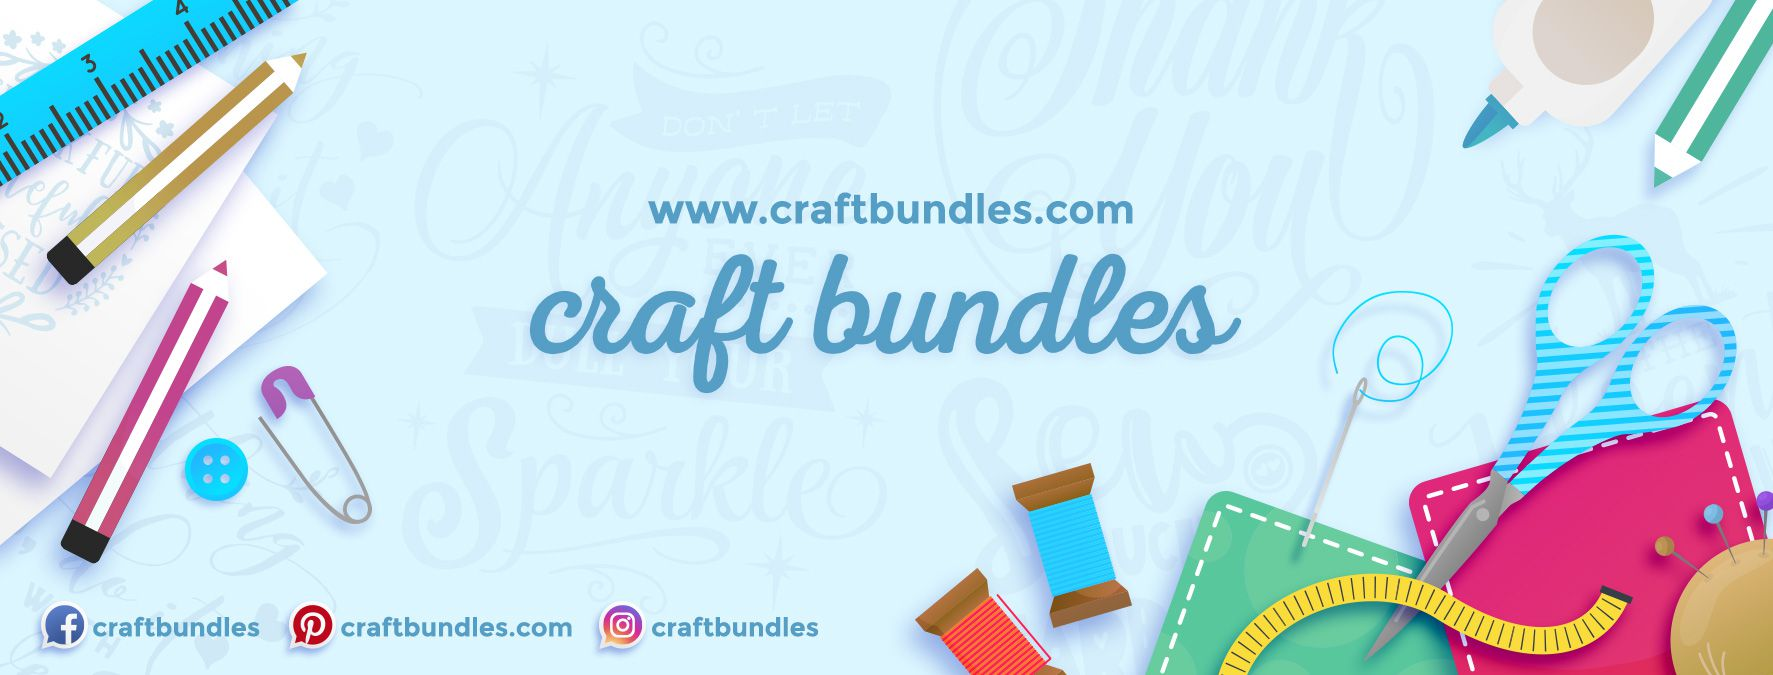 Free Craft Resources And Bundles From CraftBundles.com